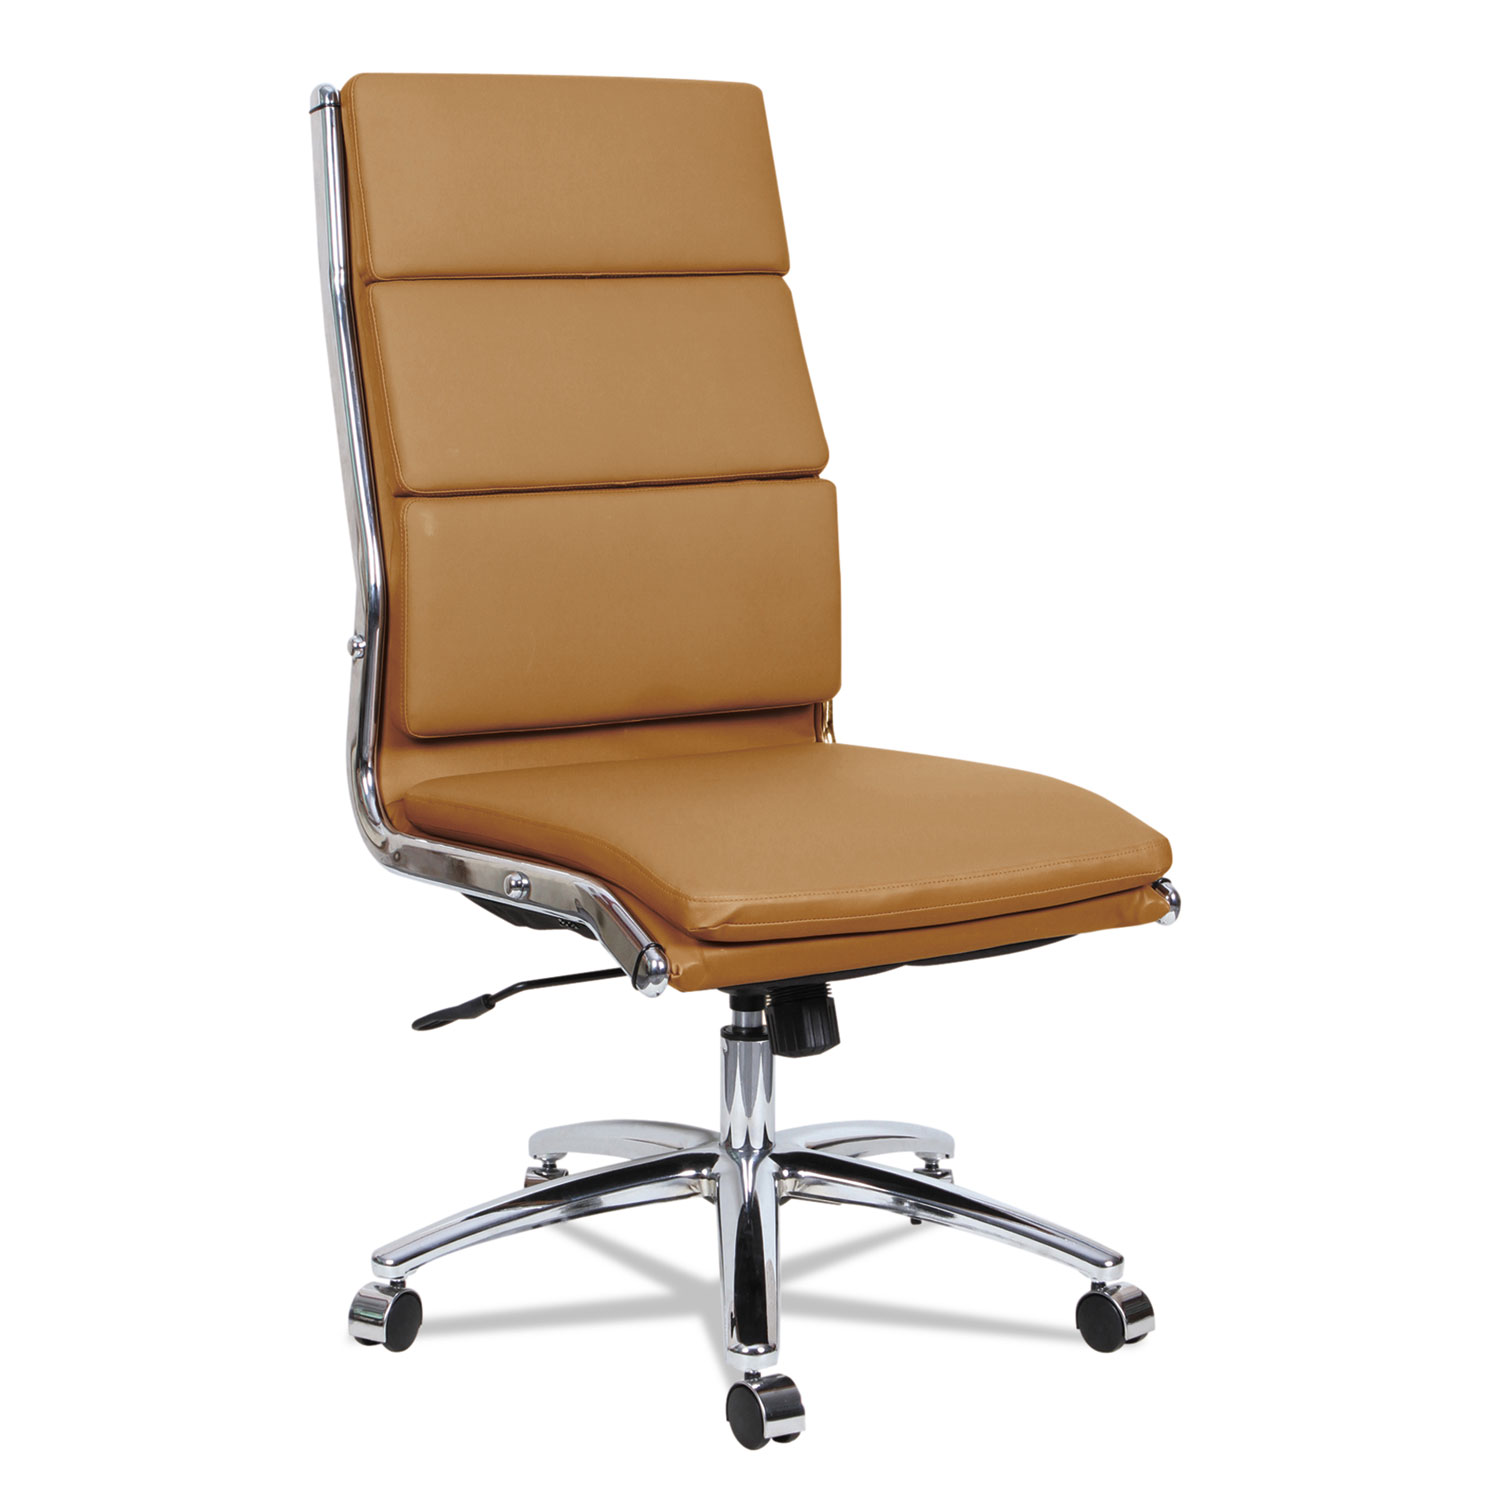 Alera Neratoli High Back Slim Profile Chair Camel Soft Leather Chrome Frame